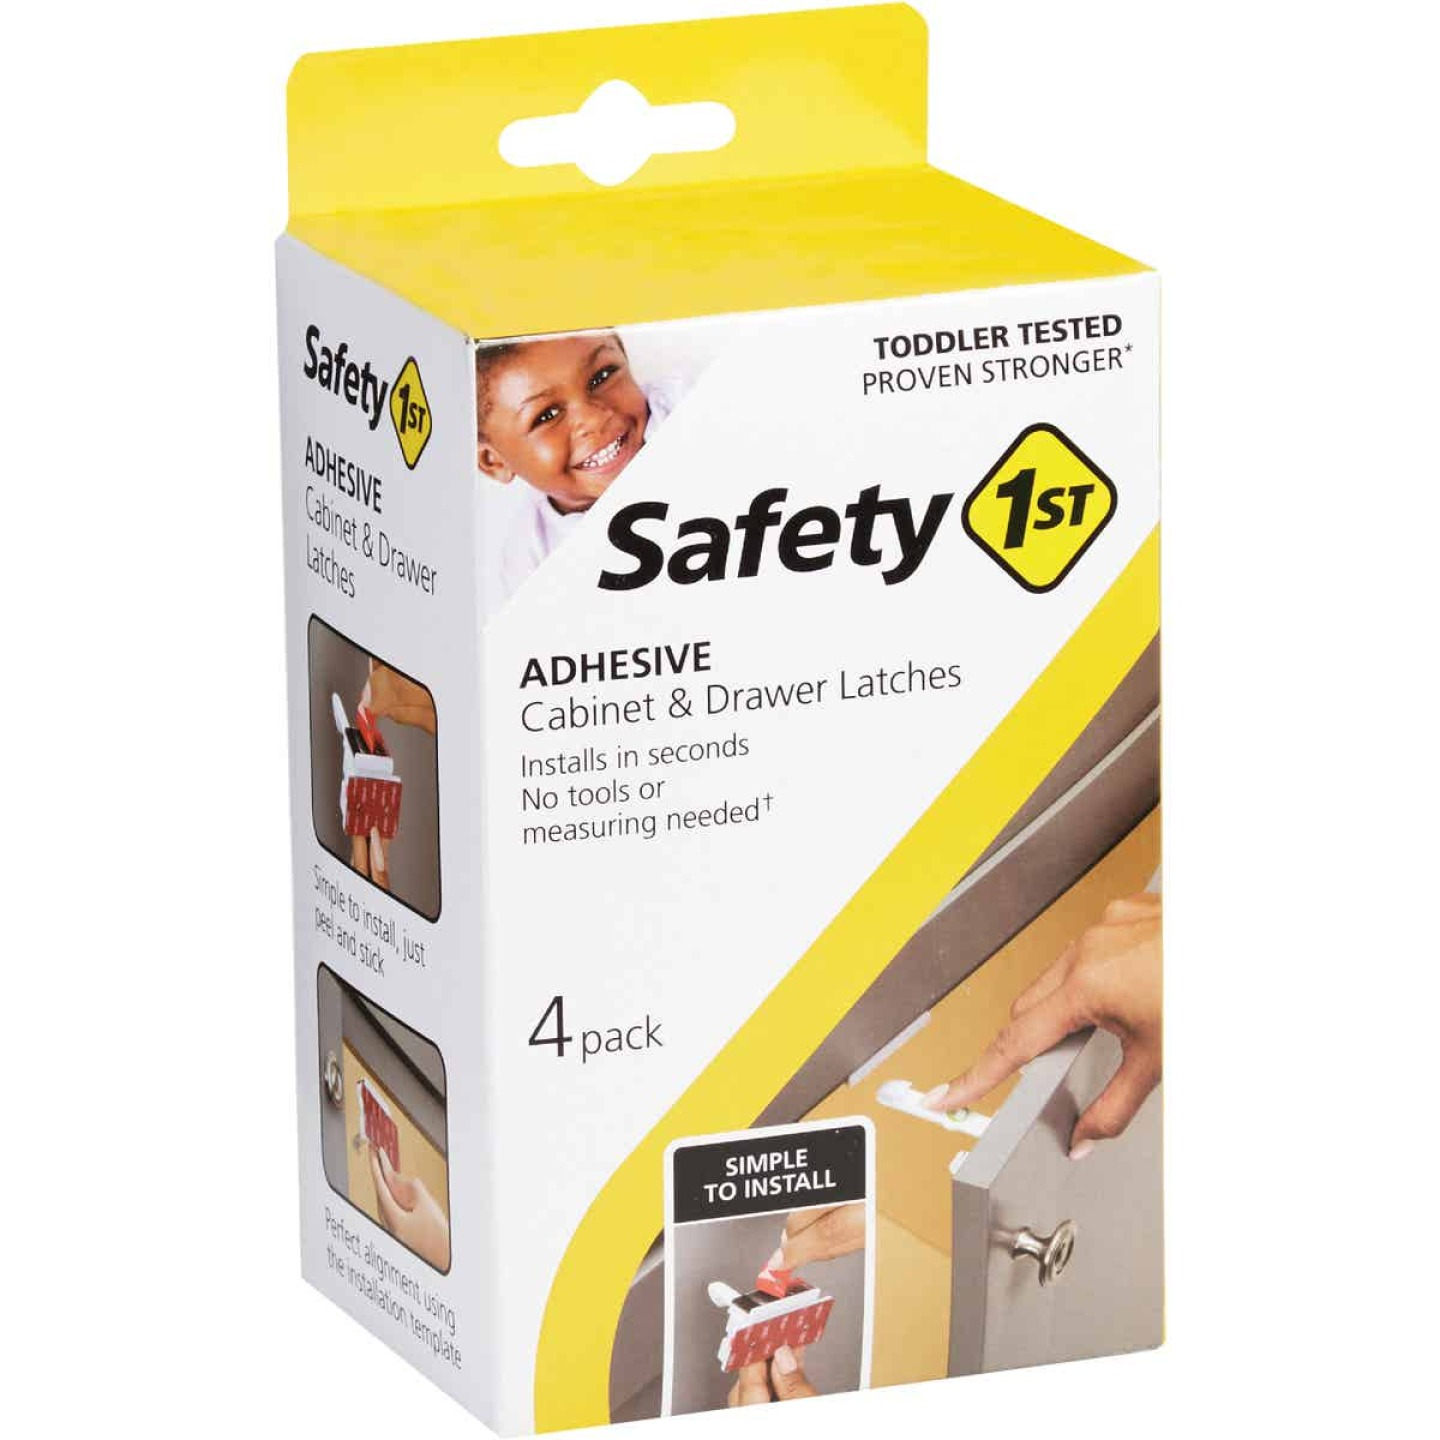 Safety 1st Adhesive Cabinet & Drawer Lock & Latch (4-Pack) Image 1